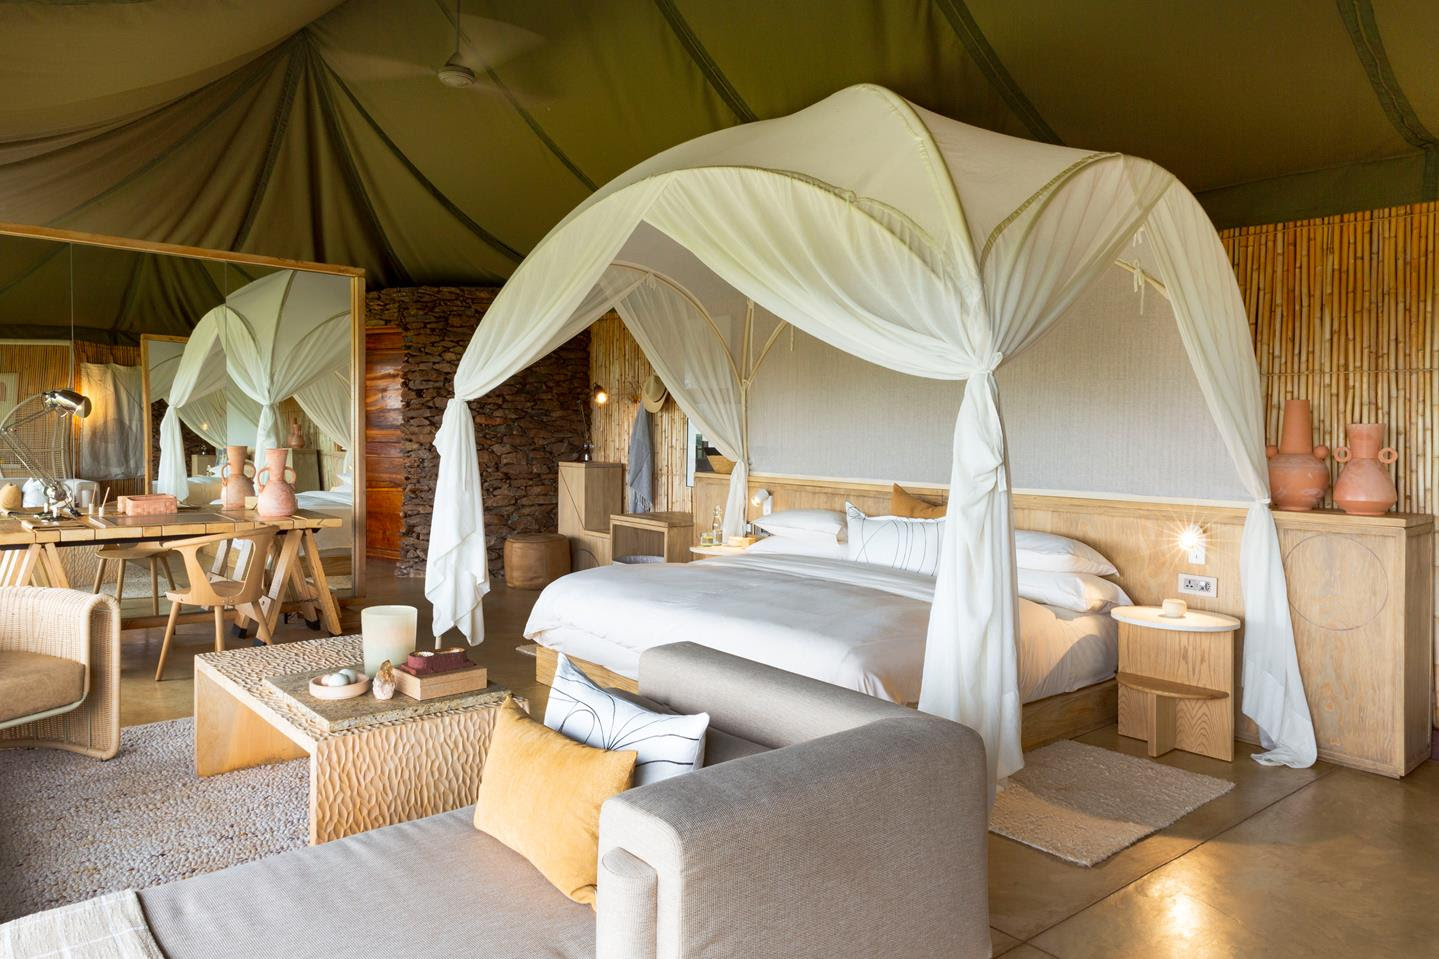 Tent interiors at Faru Faru with contemporary, clean-cut designs and a domed mosquito net enclosing the bed